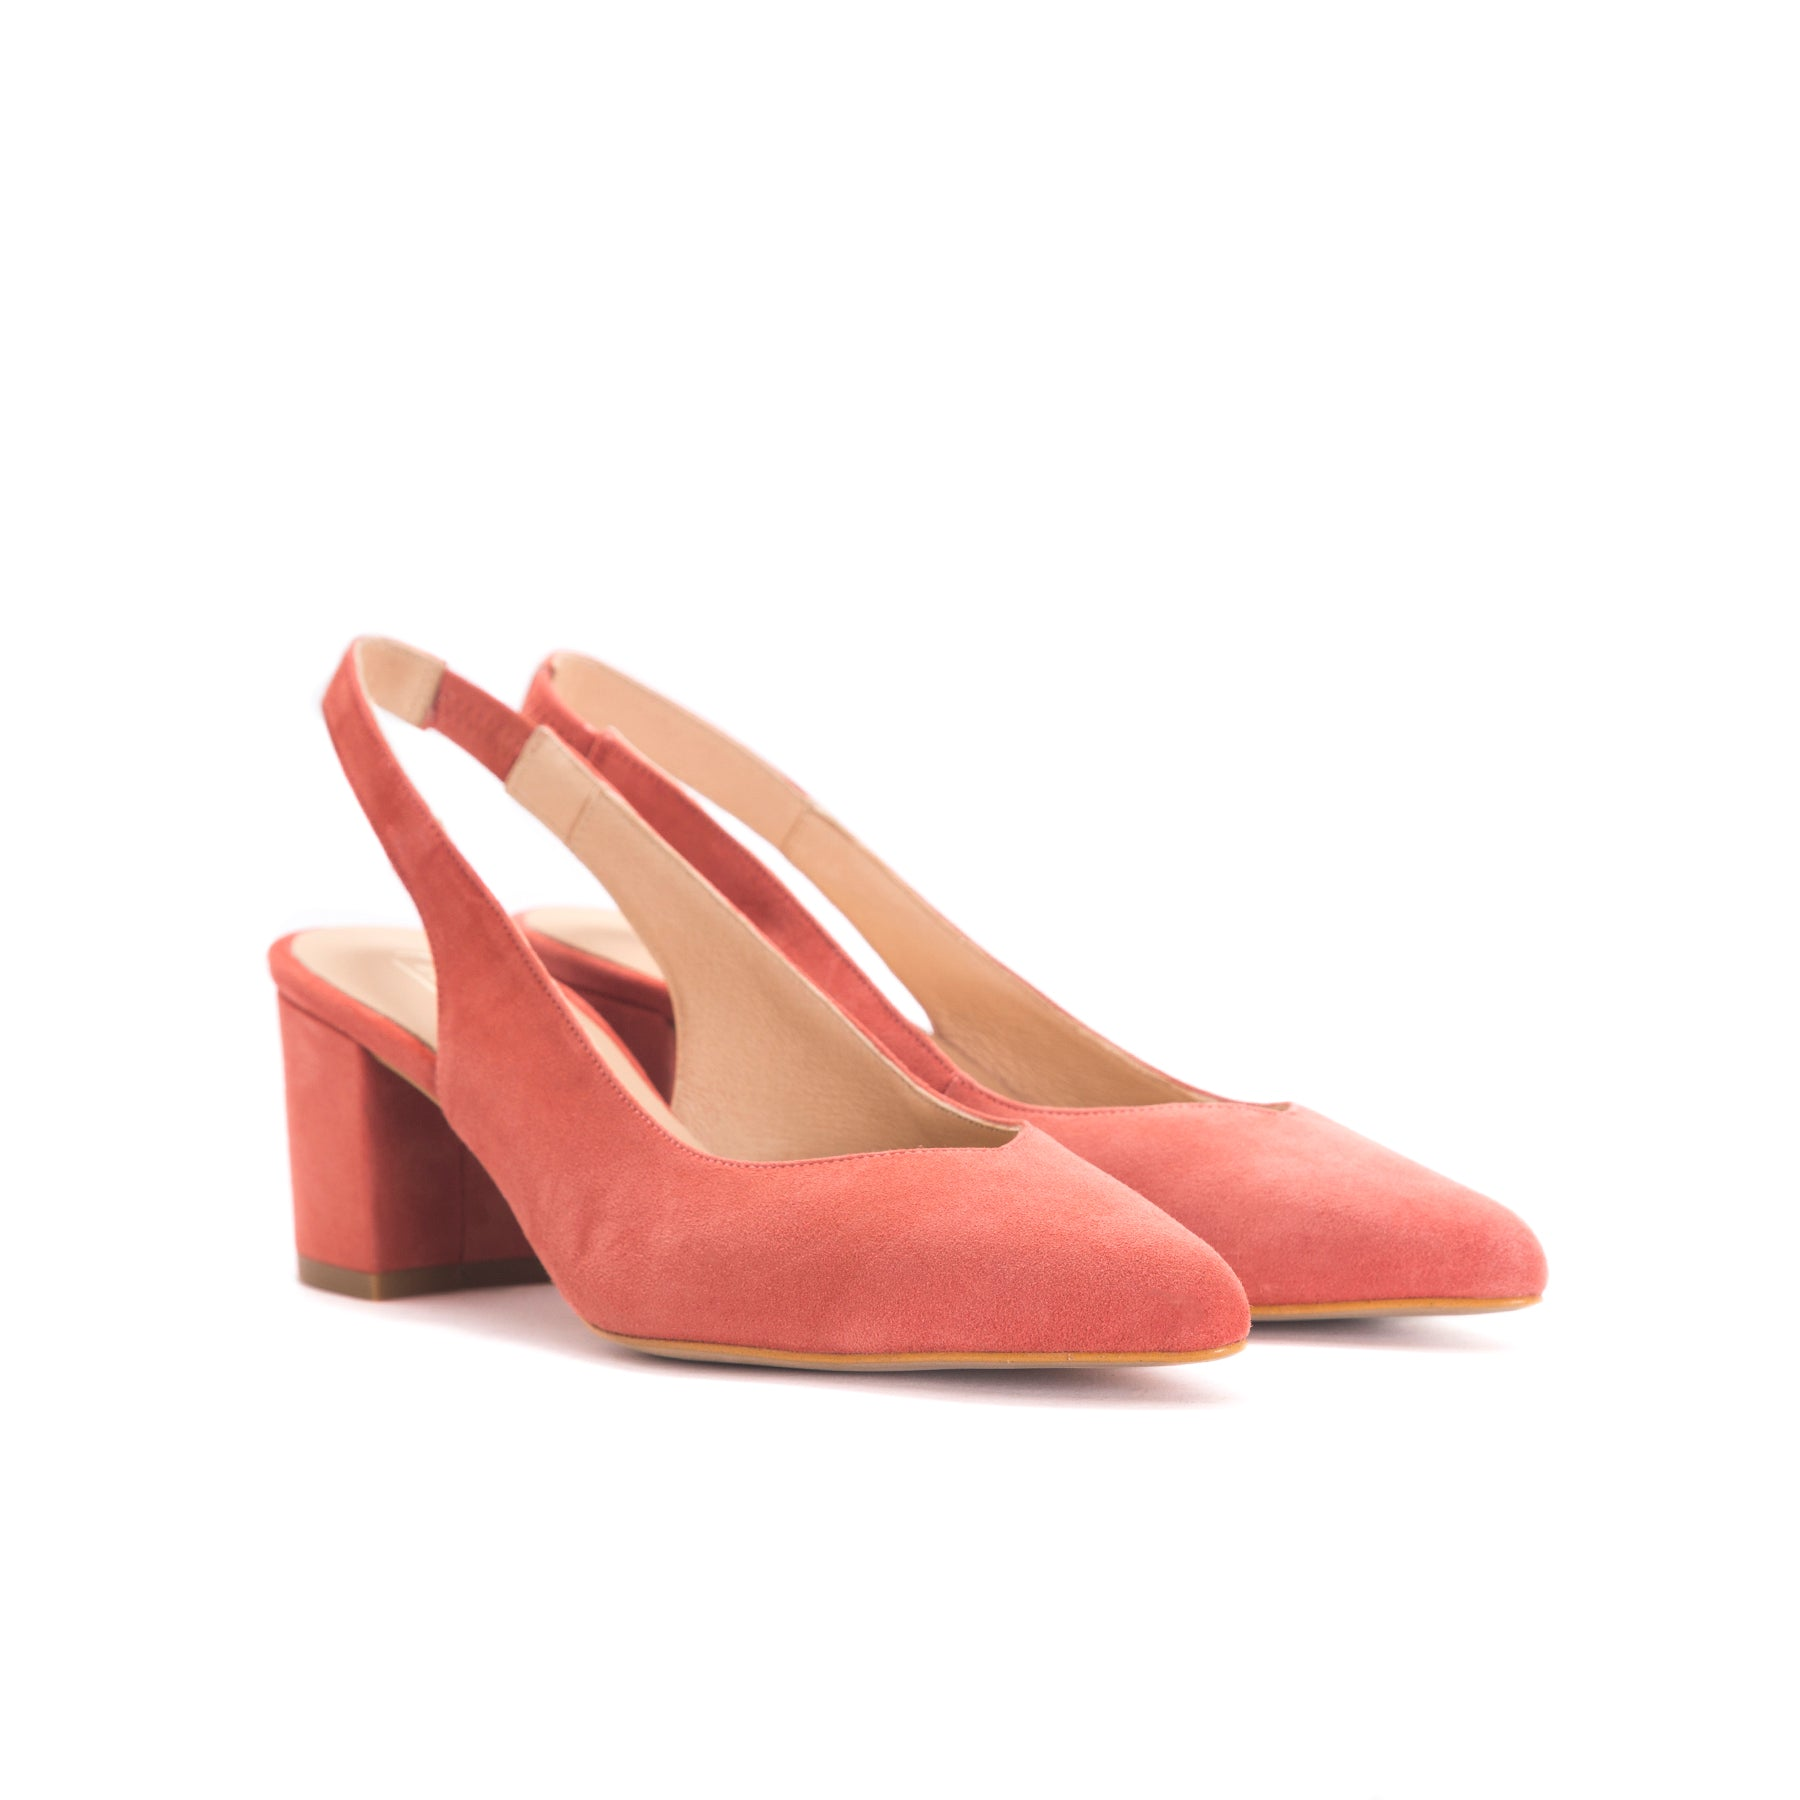 Vereda Orange Suede Pumps